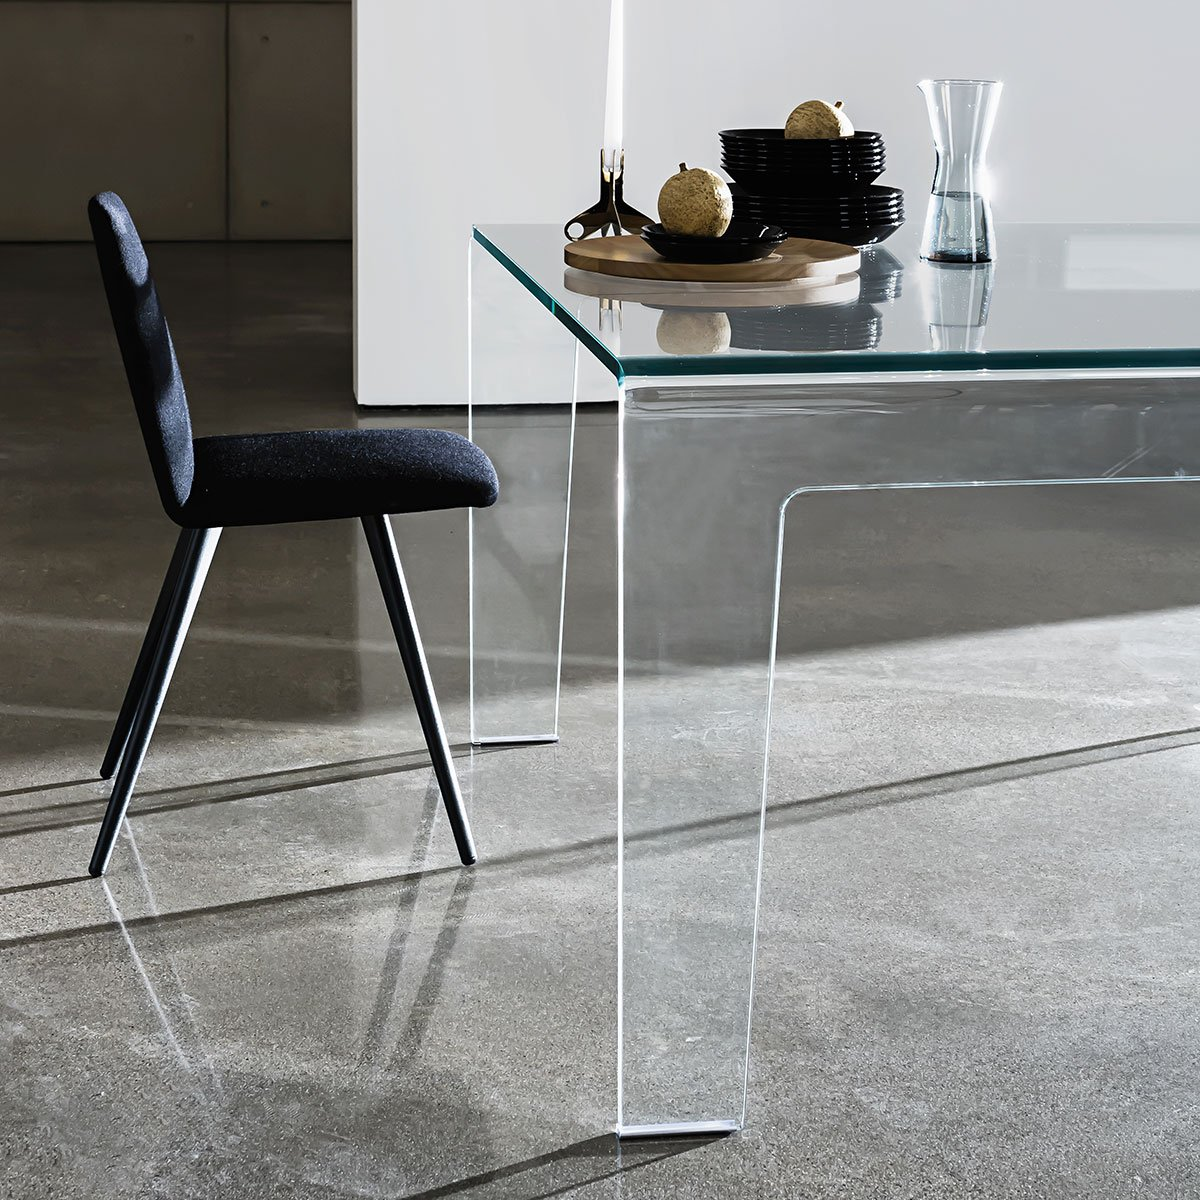 Frog Cuved Glass Dining Table Klarity Glass Furniture